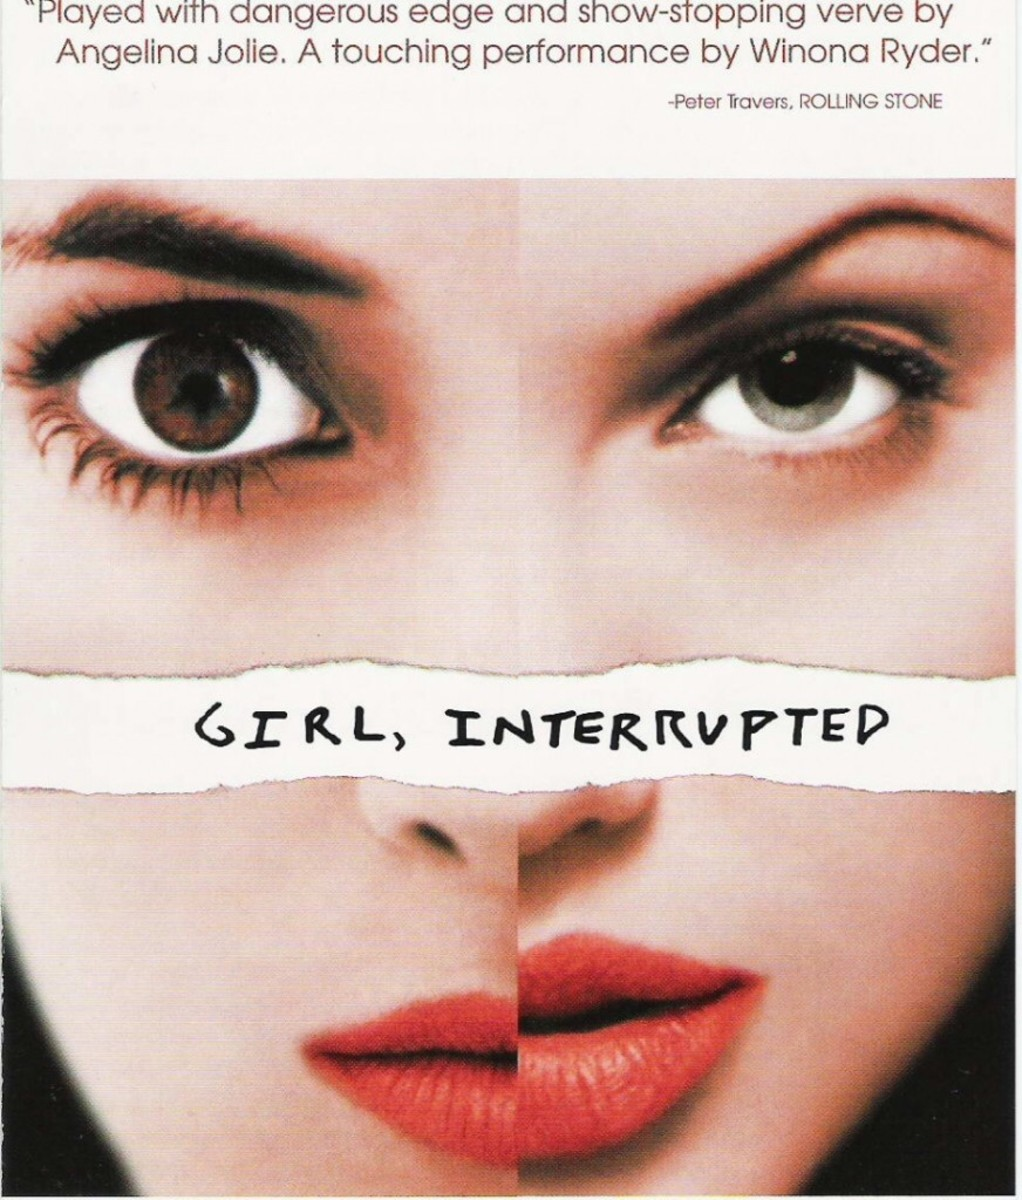 psychological analysis of movie girl interrupted hubpages